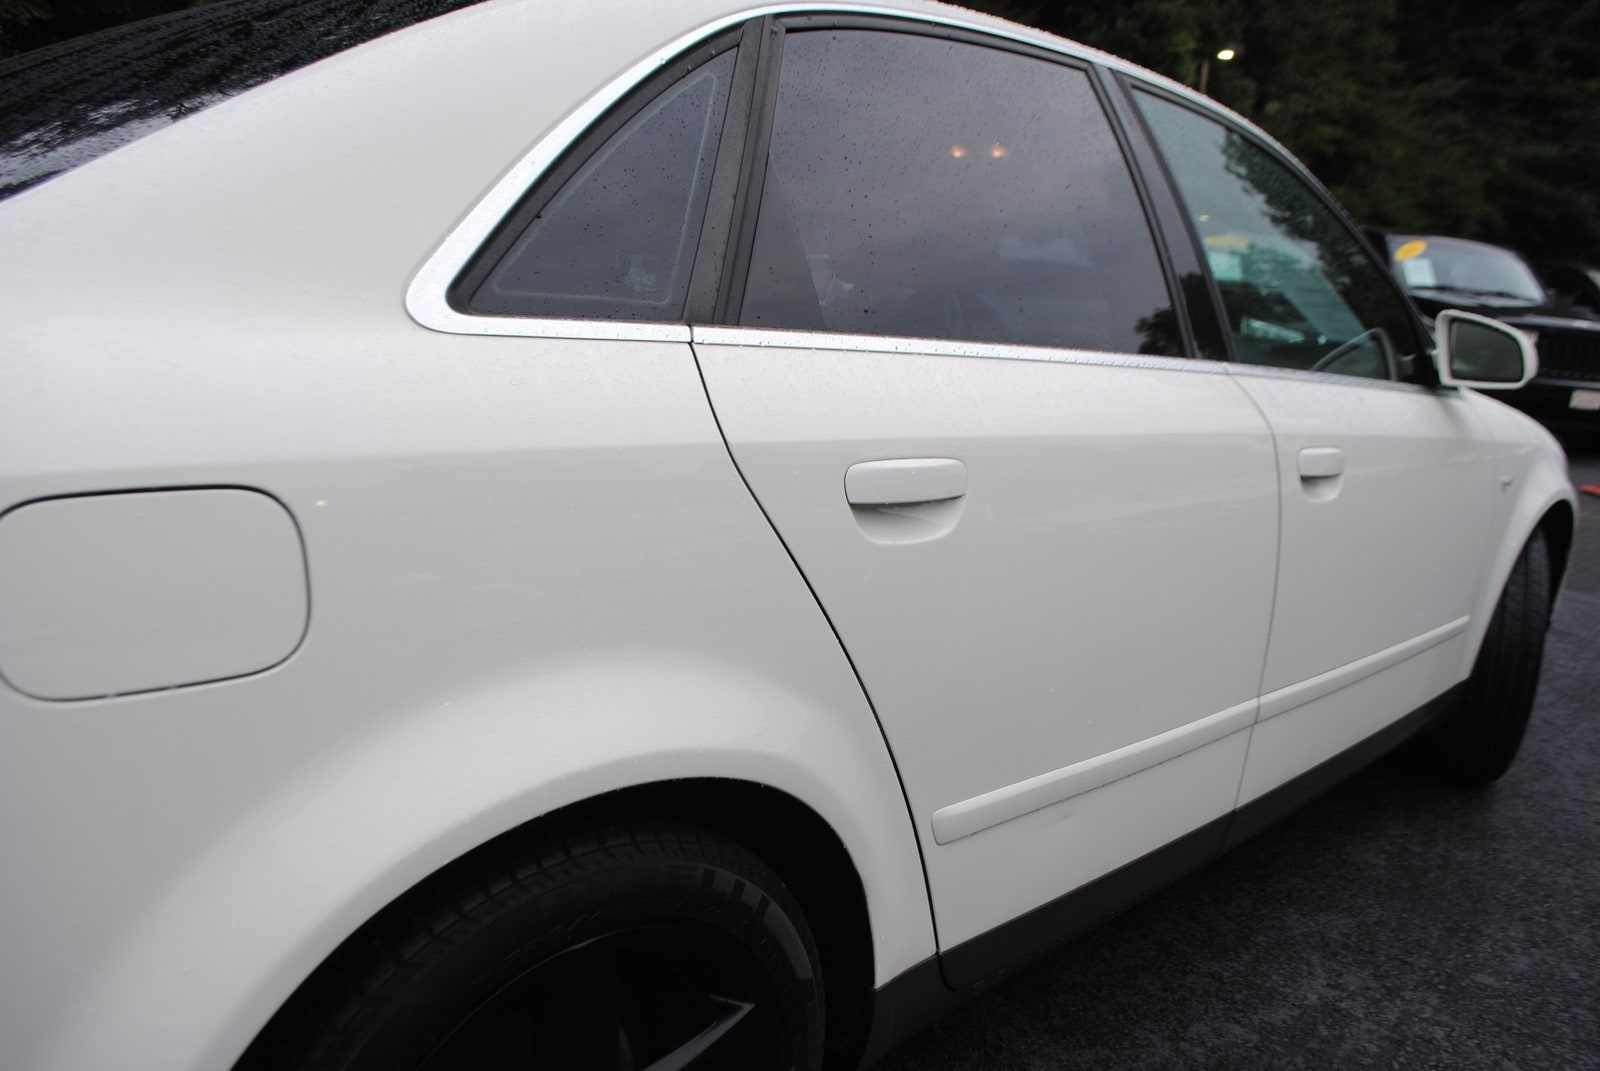 used 2004 audi a4 for sale west milford nj rh ramseycorp com Audi A4 Owner's Manual 2002 Audi Quattro Owner's Manual